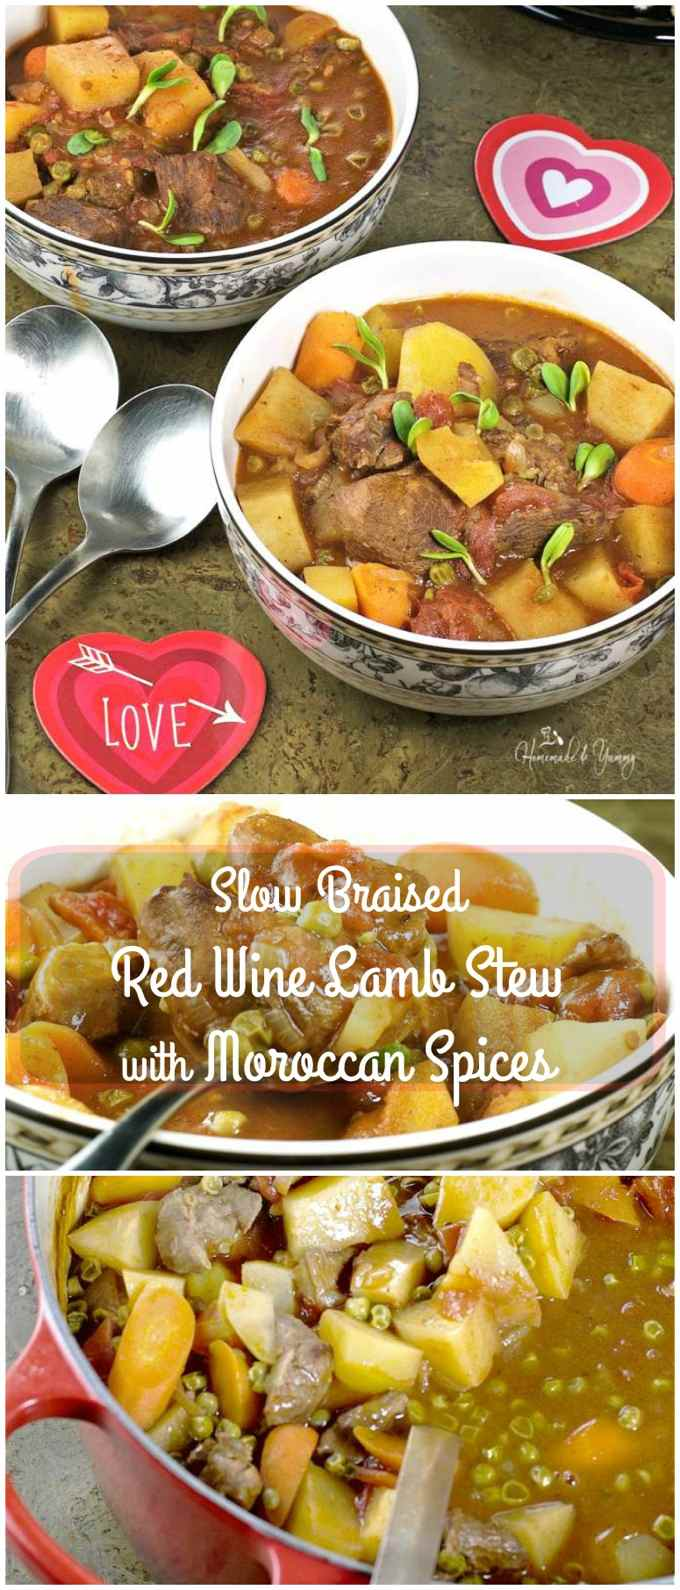 Slow Braised Red Wine Lamb Stew with Moroccan Spices is fragrant and hearty. Elegant comfort food, perfect for a special occasion.| homemadeandyummy.com